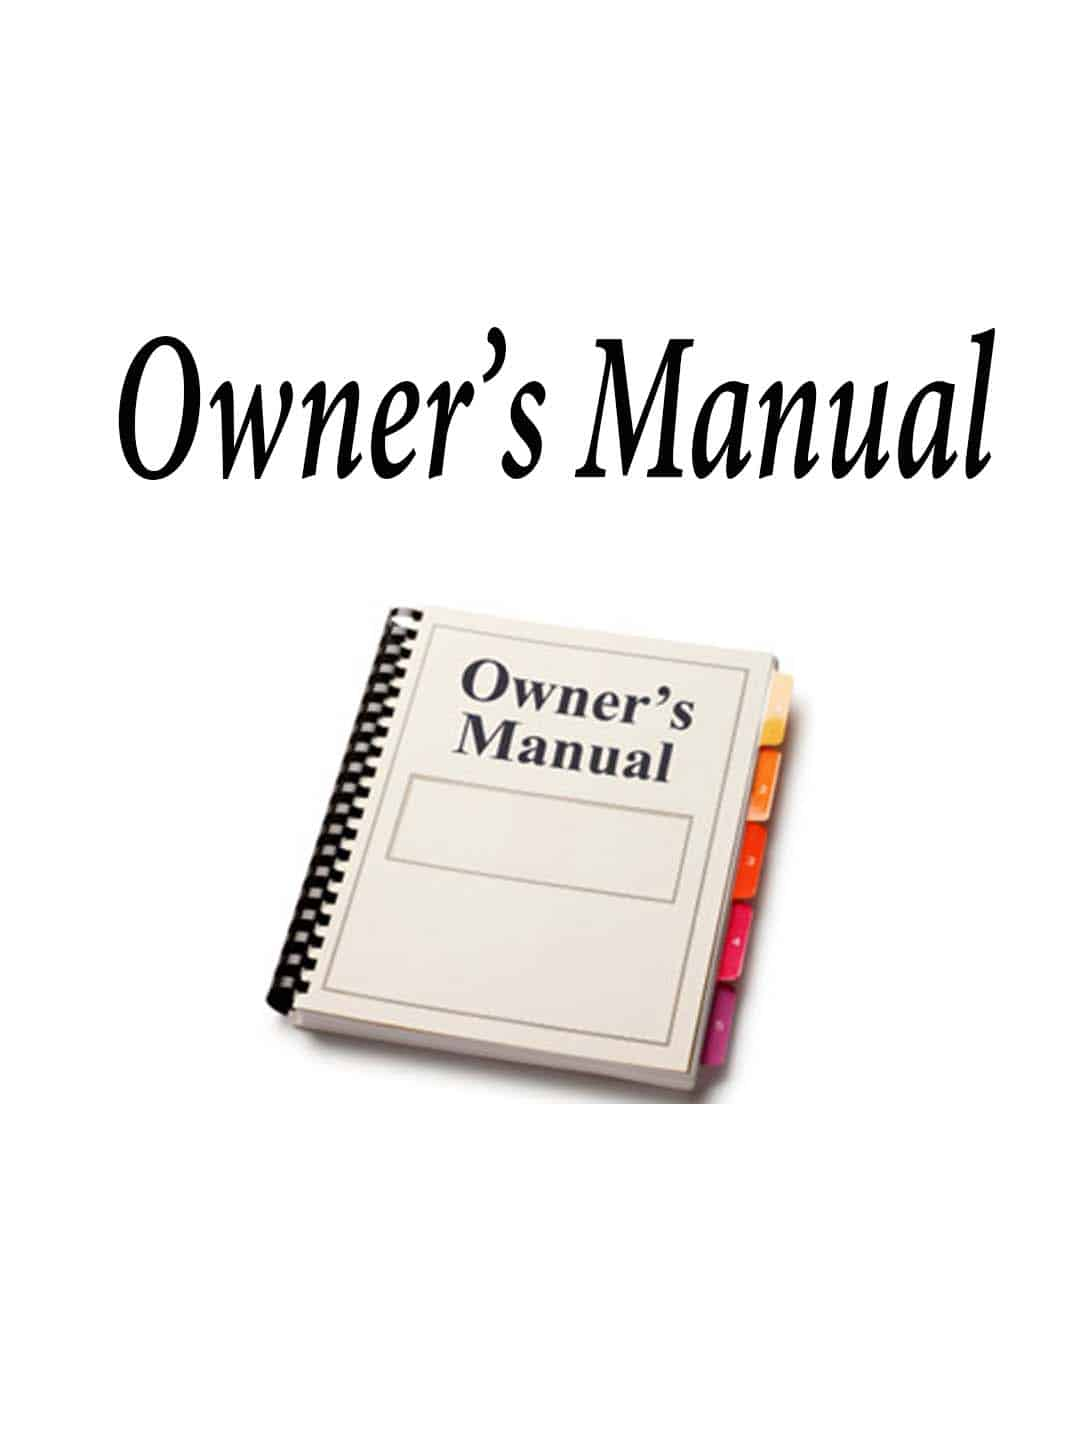 OMPS7 - Pyramid Owners Manual For Ps7  Discontinued